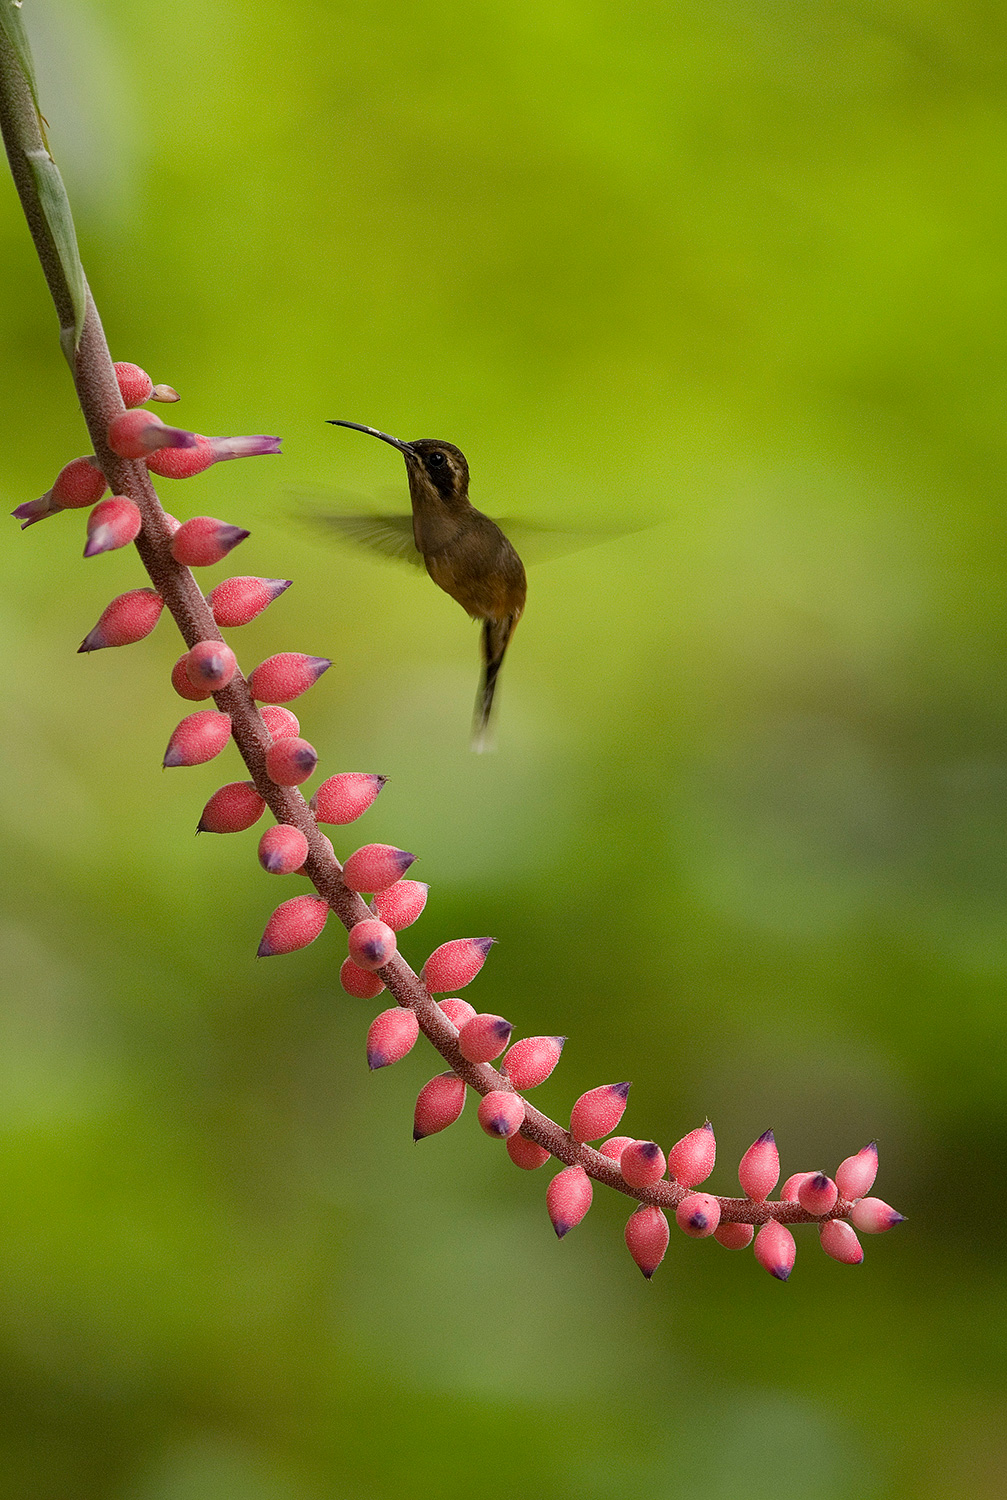 A hummingbird approaches a long branch covered in small pink flowers